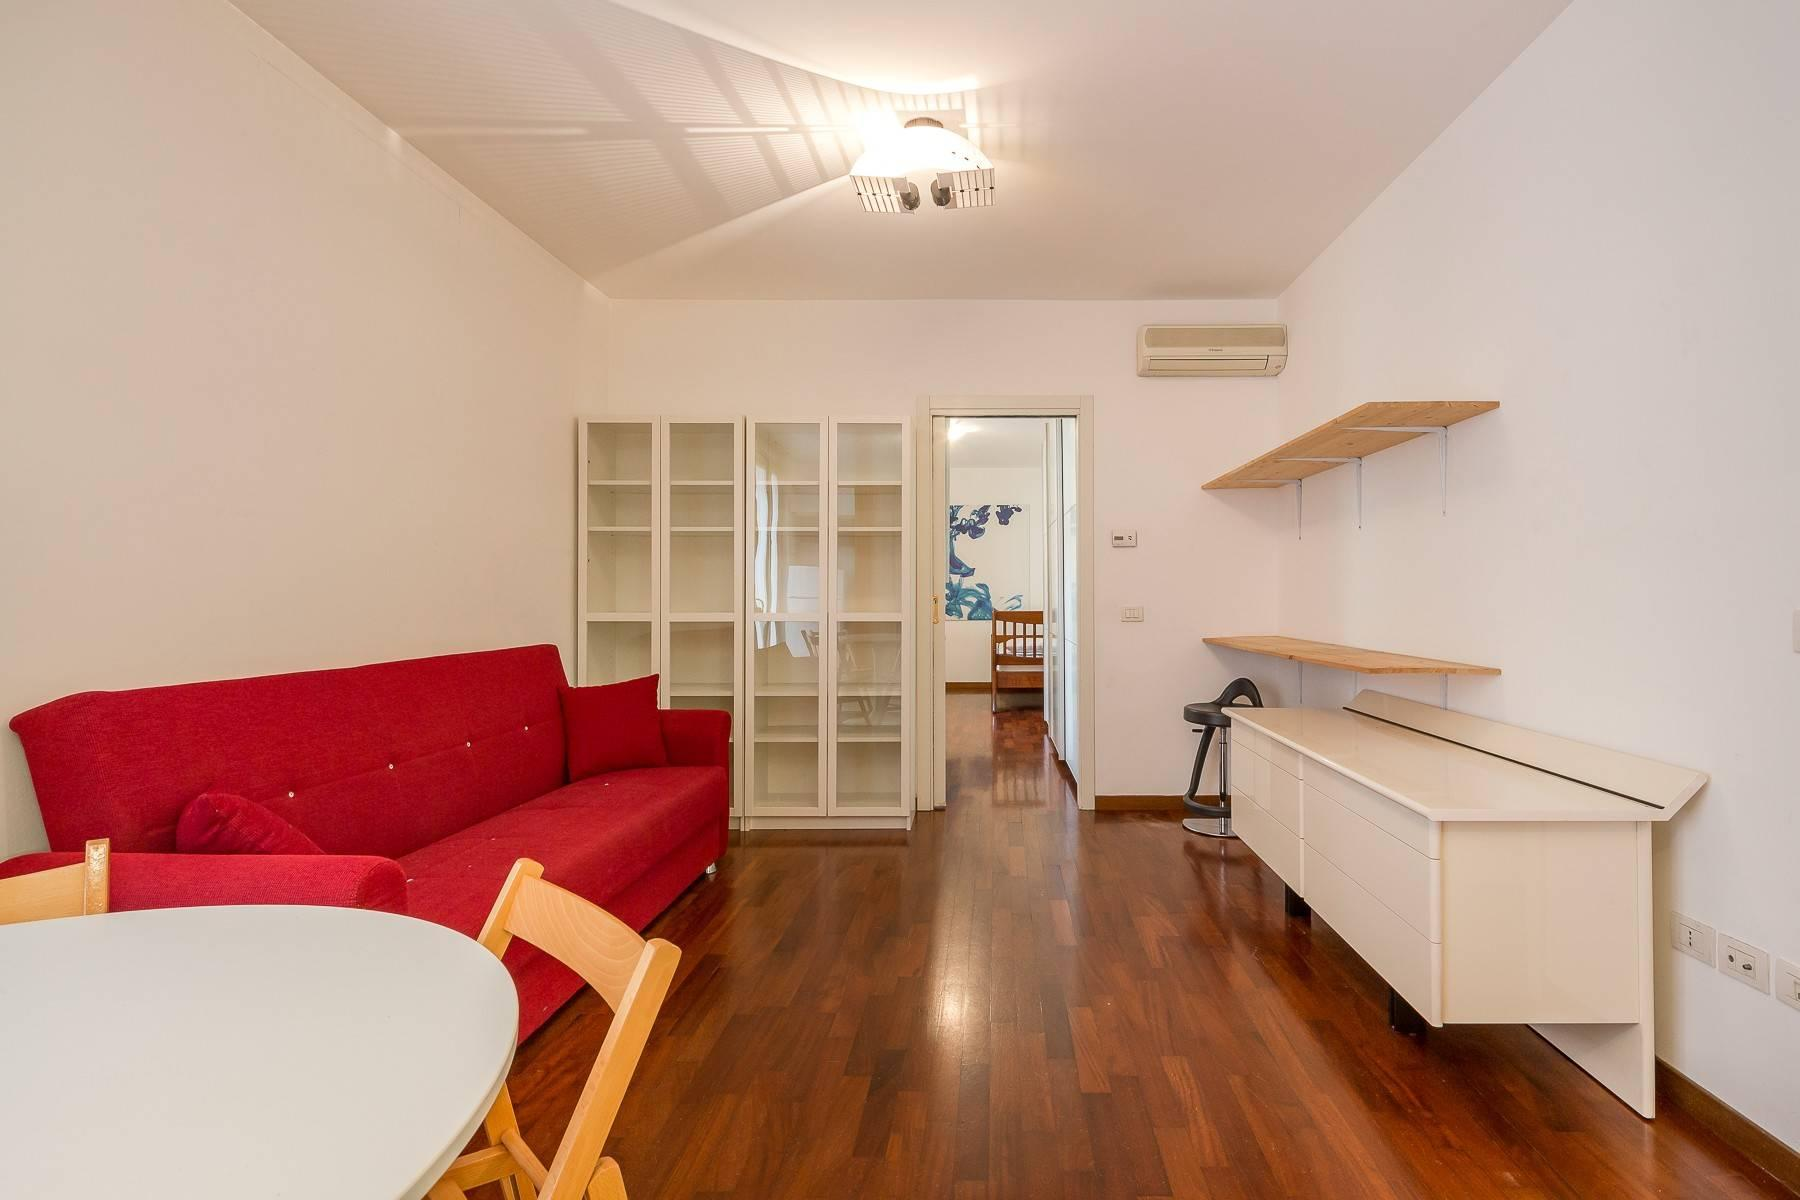 One-bedroom apartment in the Isola area - 10